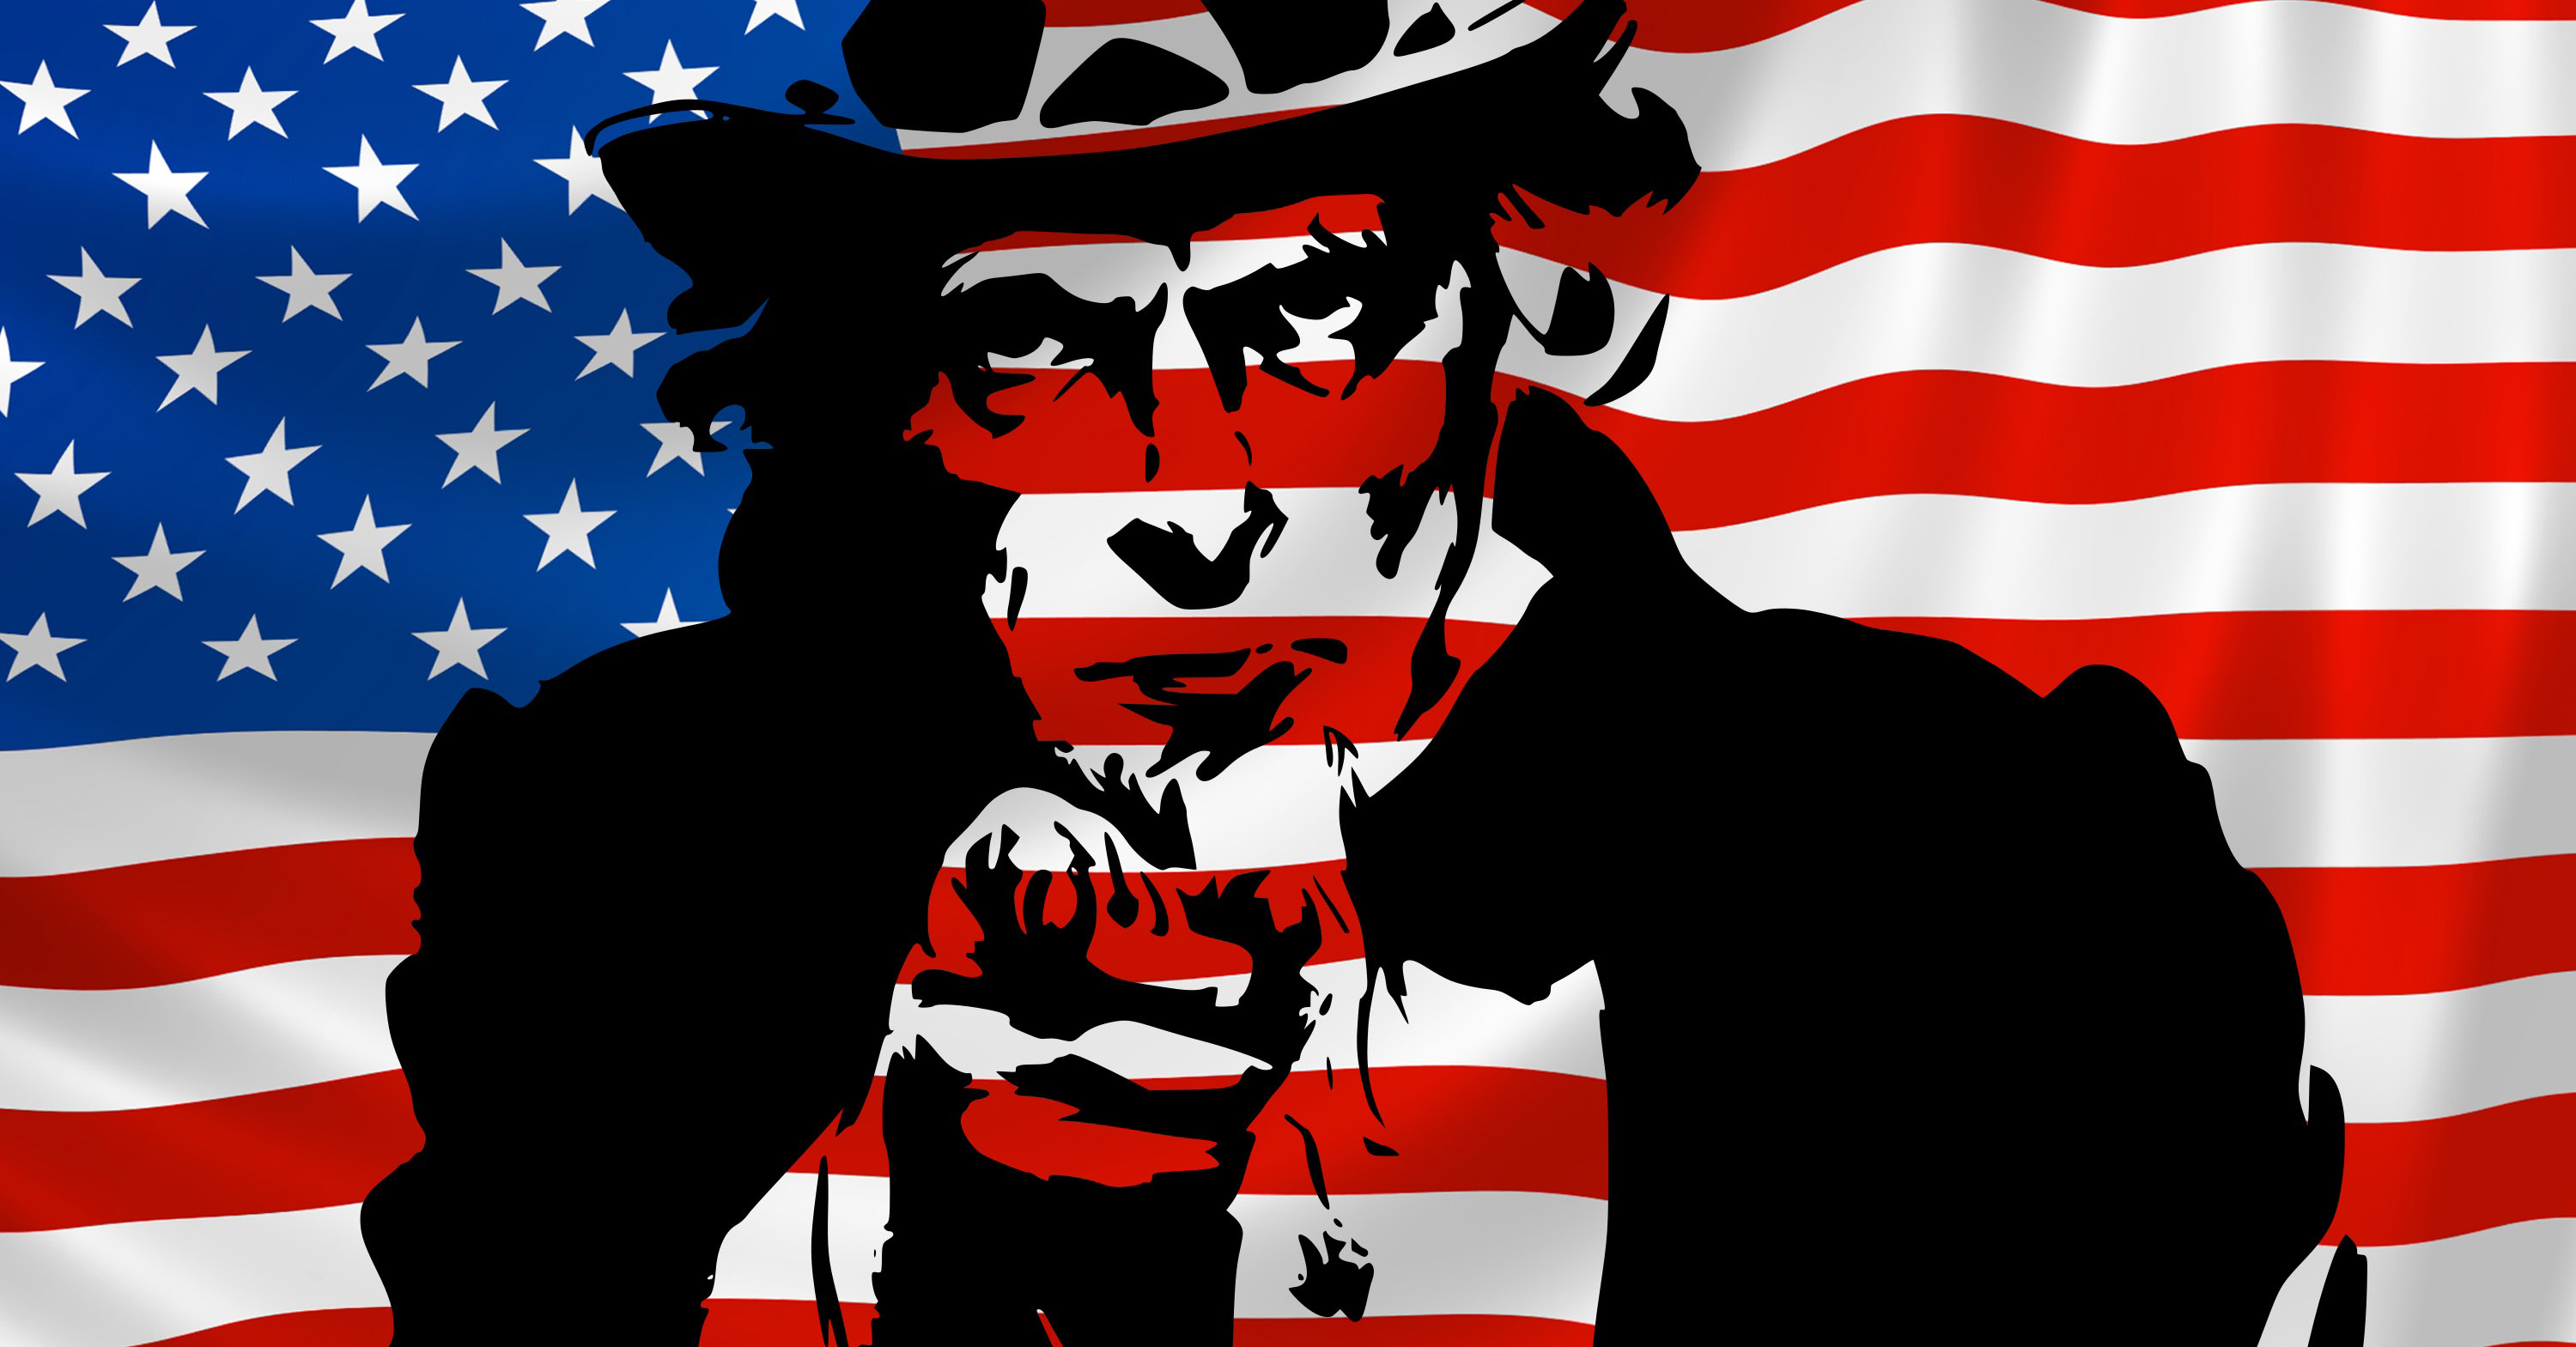 American Flag with Uncle Sam Embedded